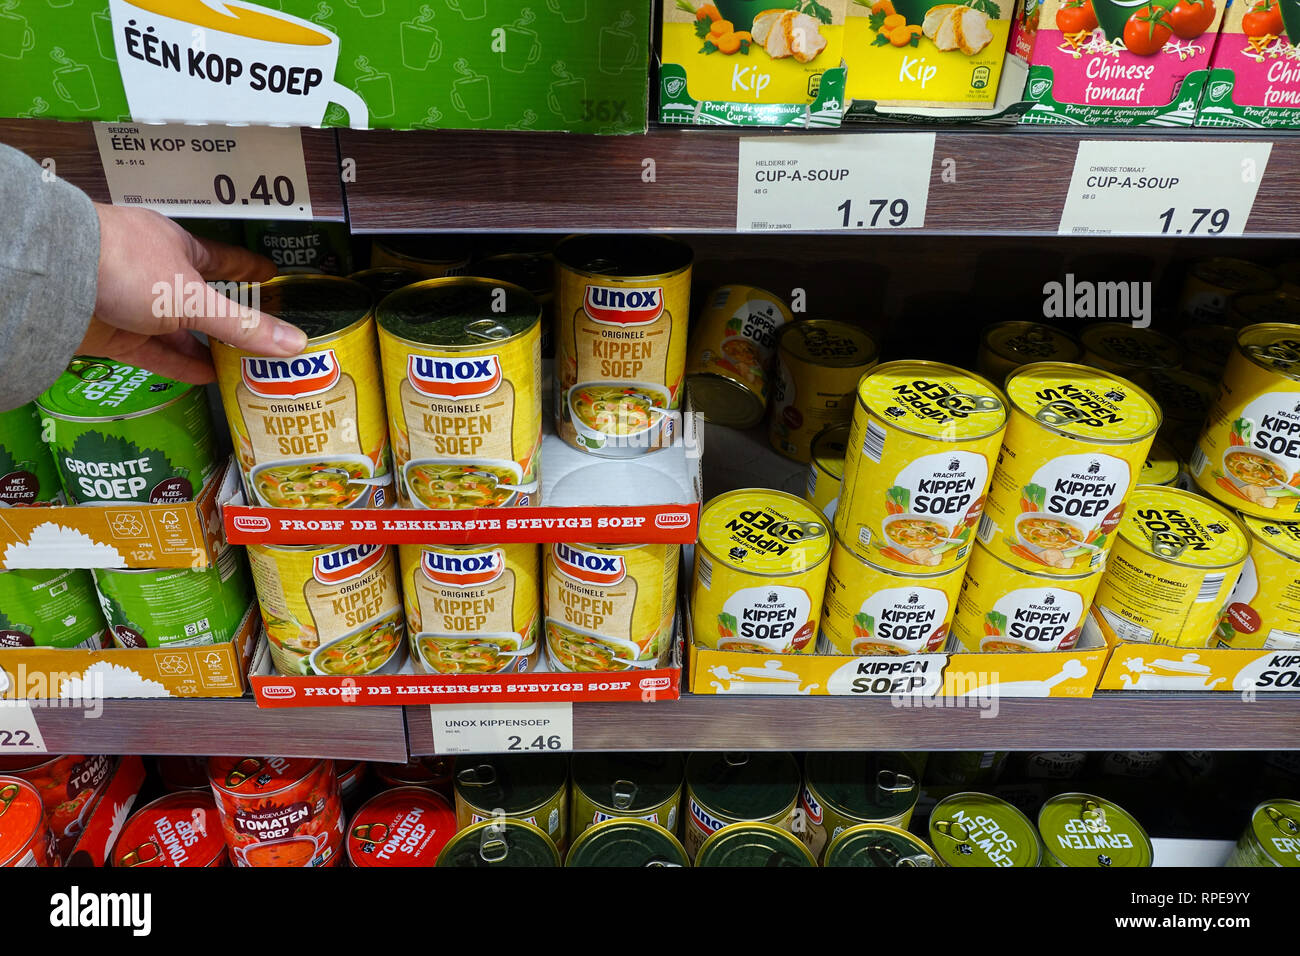 Canned soup in a ALDI supermarket. - Stock Image